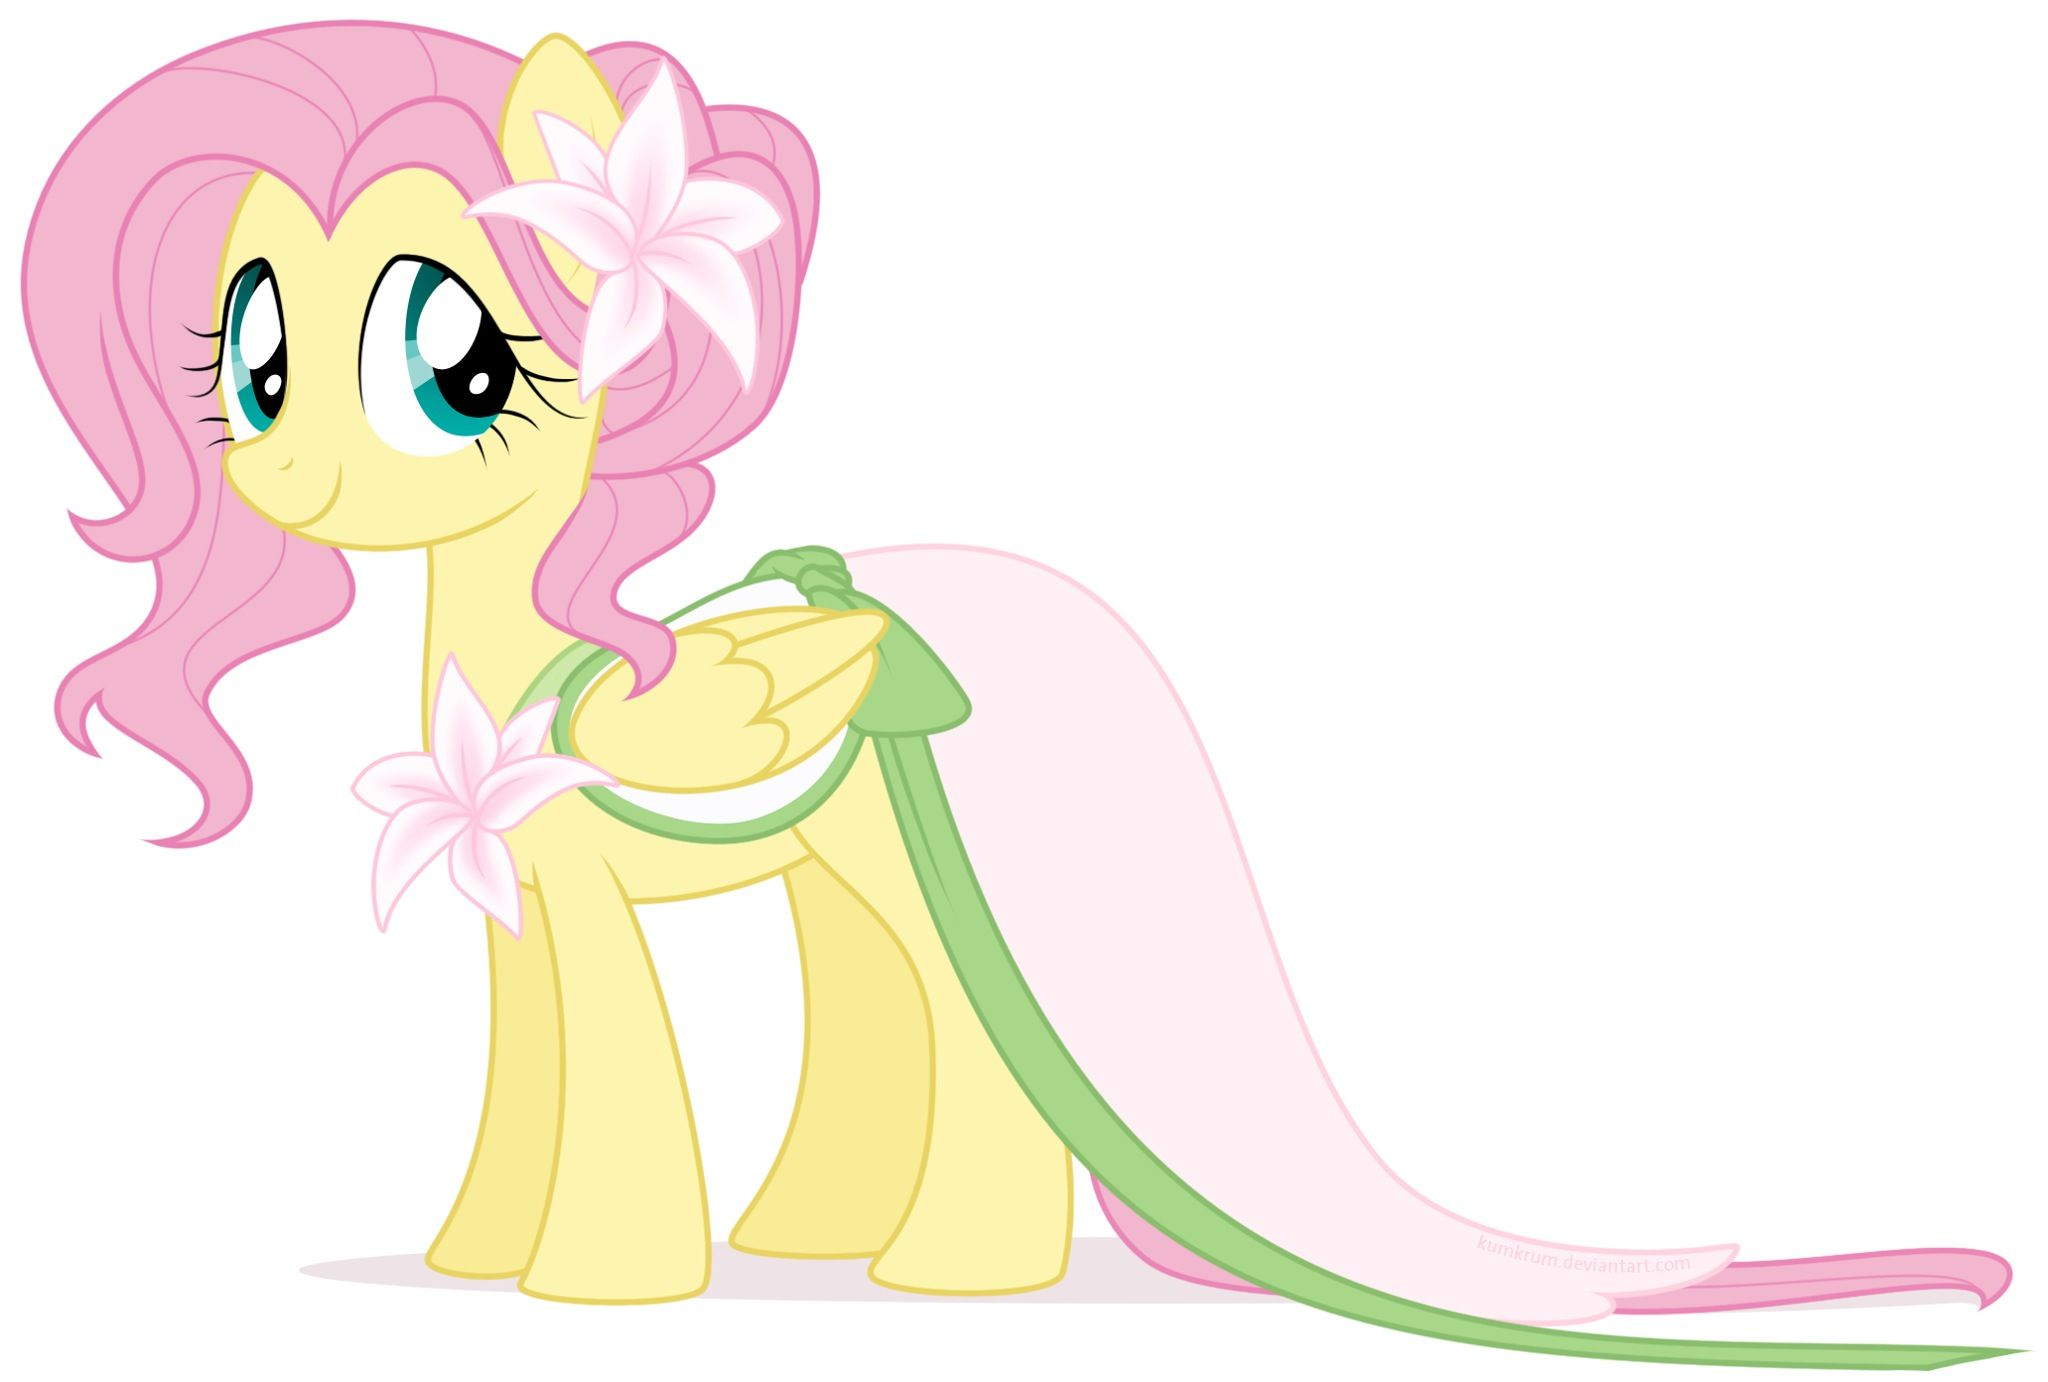 my little pony hair style fluttershy s dress fluttershy pony 4368 | 9451a3210fcc5a3309a67815be3e956c